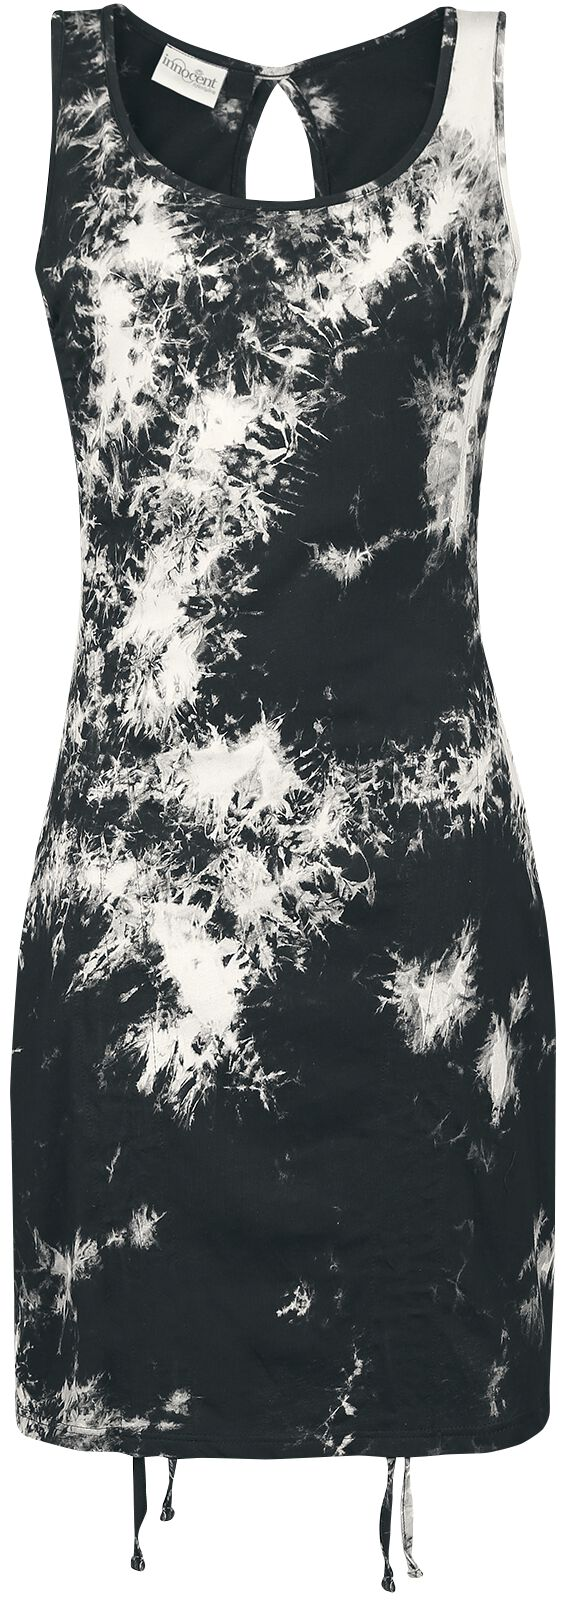 Image of   Innocent Alina Tie Dye Dress Kjole sort-hvid